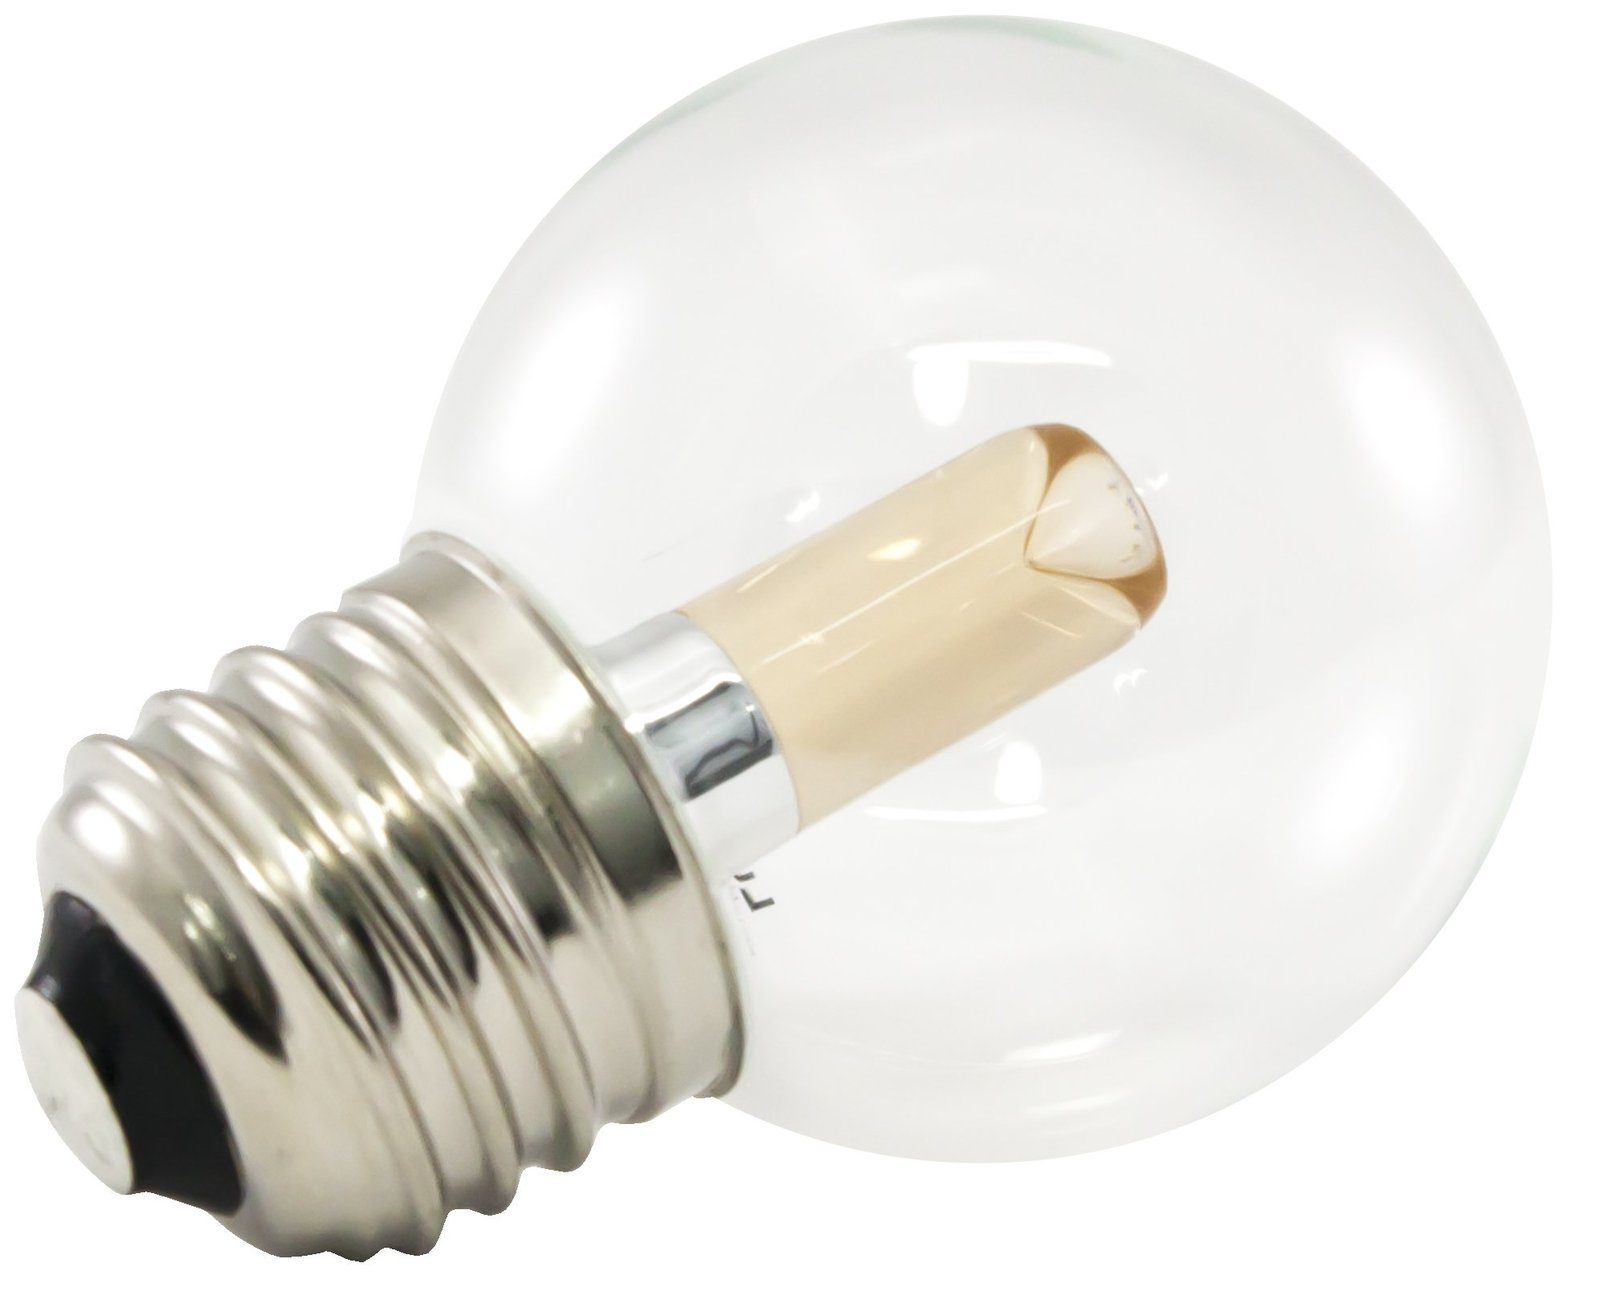 American Lighting PG50-E26-XWW Dimmable LED G50 Globe Light Bulbs, Ideal for ... for sale  USA